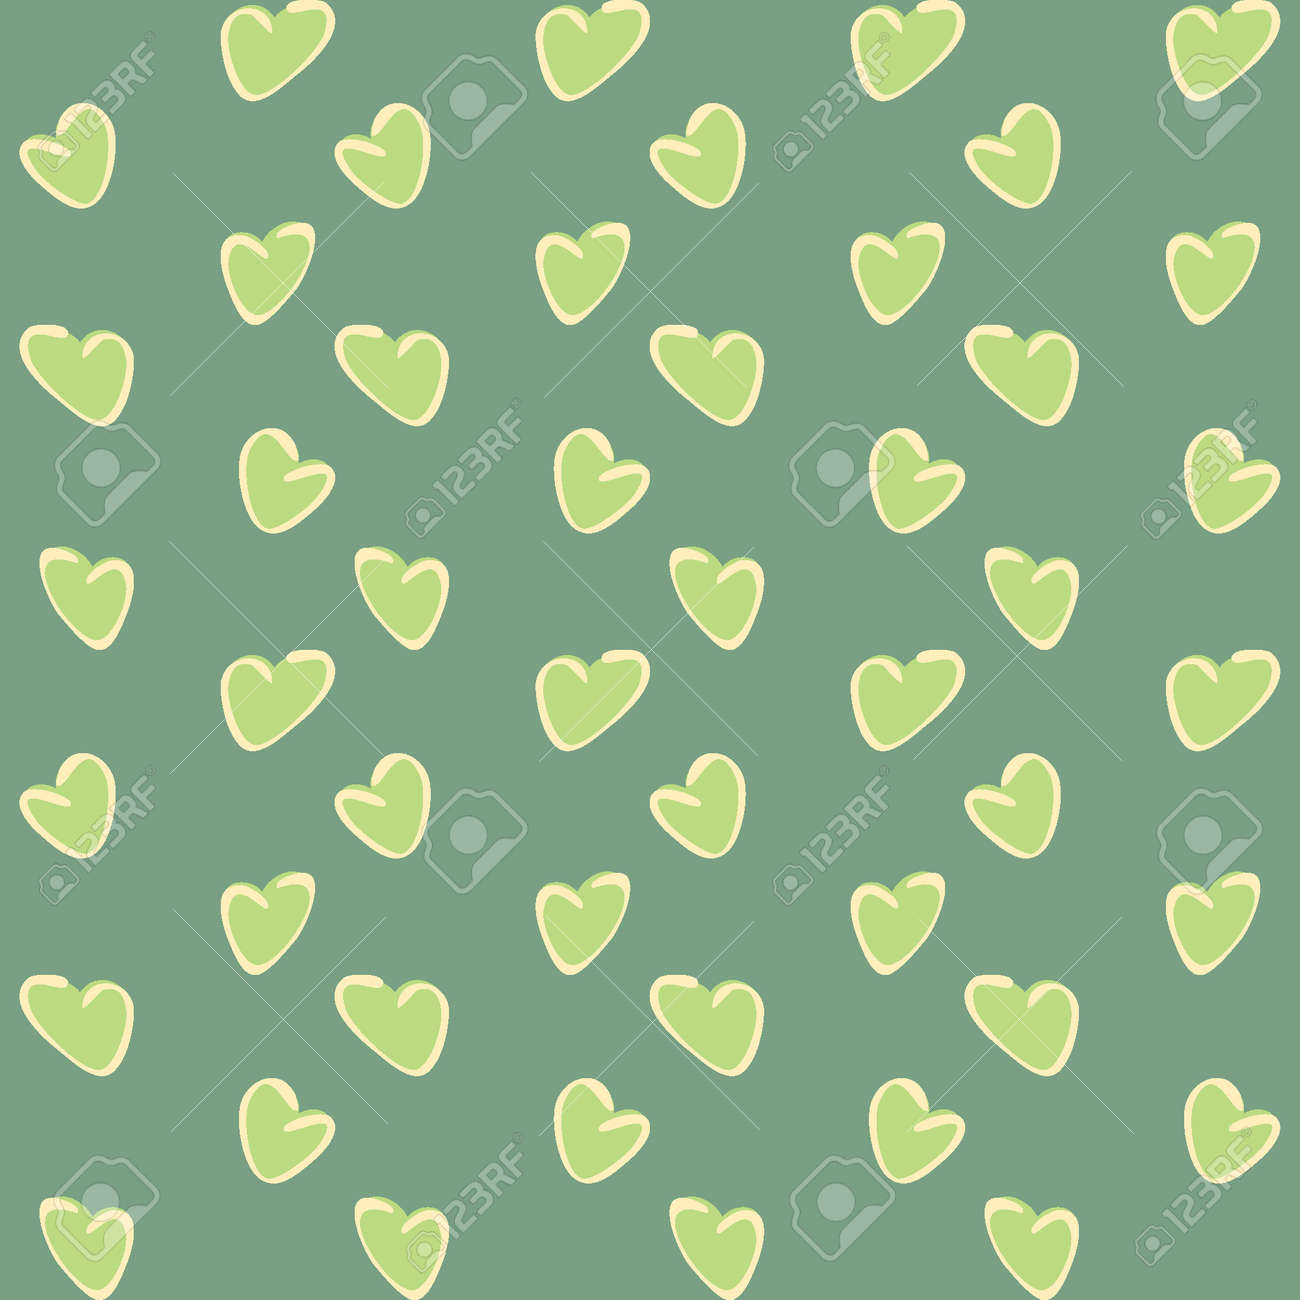 Seamless pattern, endless texture on a square background - stylized hearts - color graphics. A fabulous world of love. Surreal. Design elements. Background for website, blog, wallpaper, textiles, packaging. - 170357317